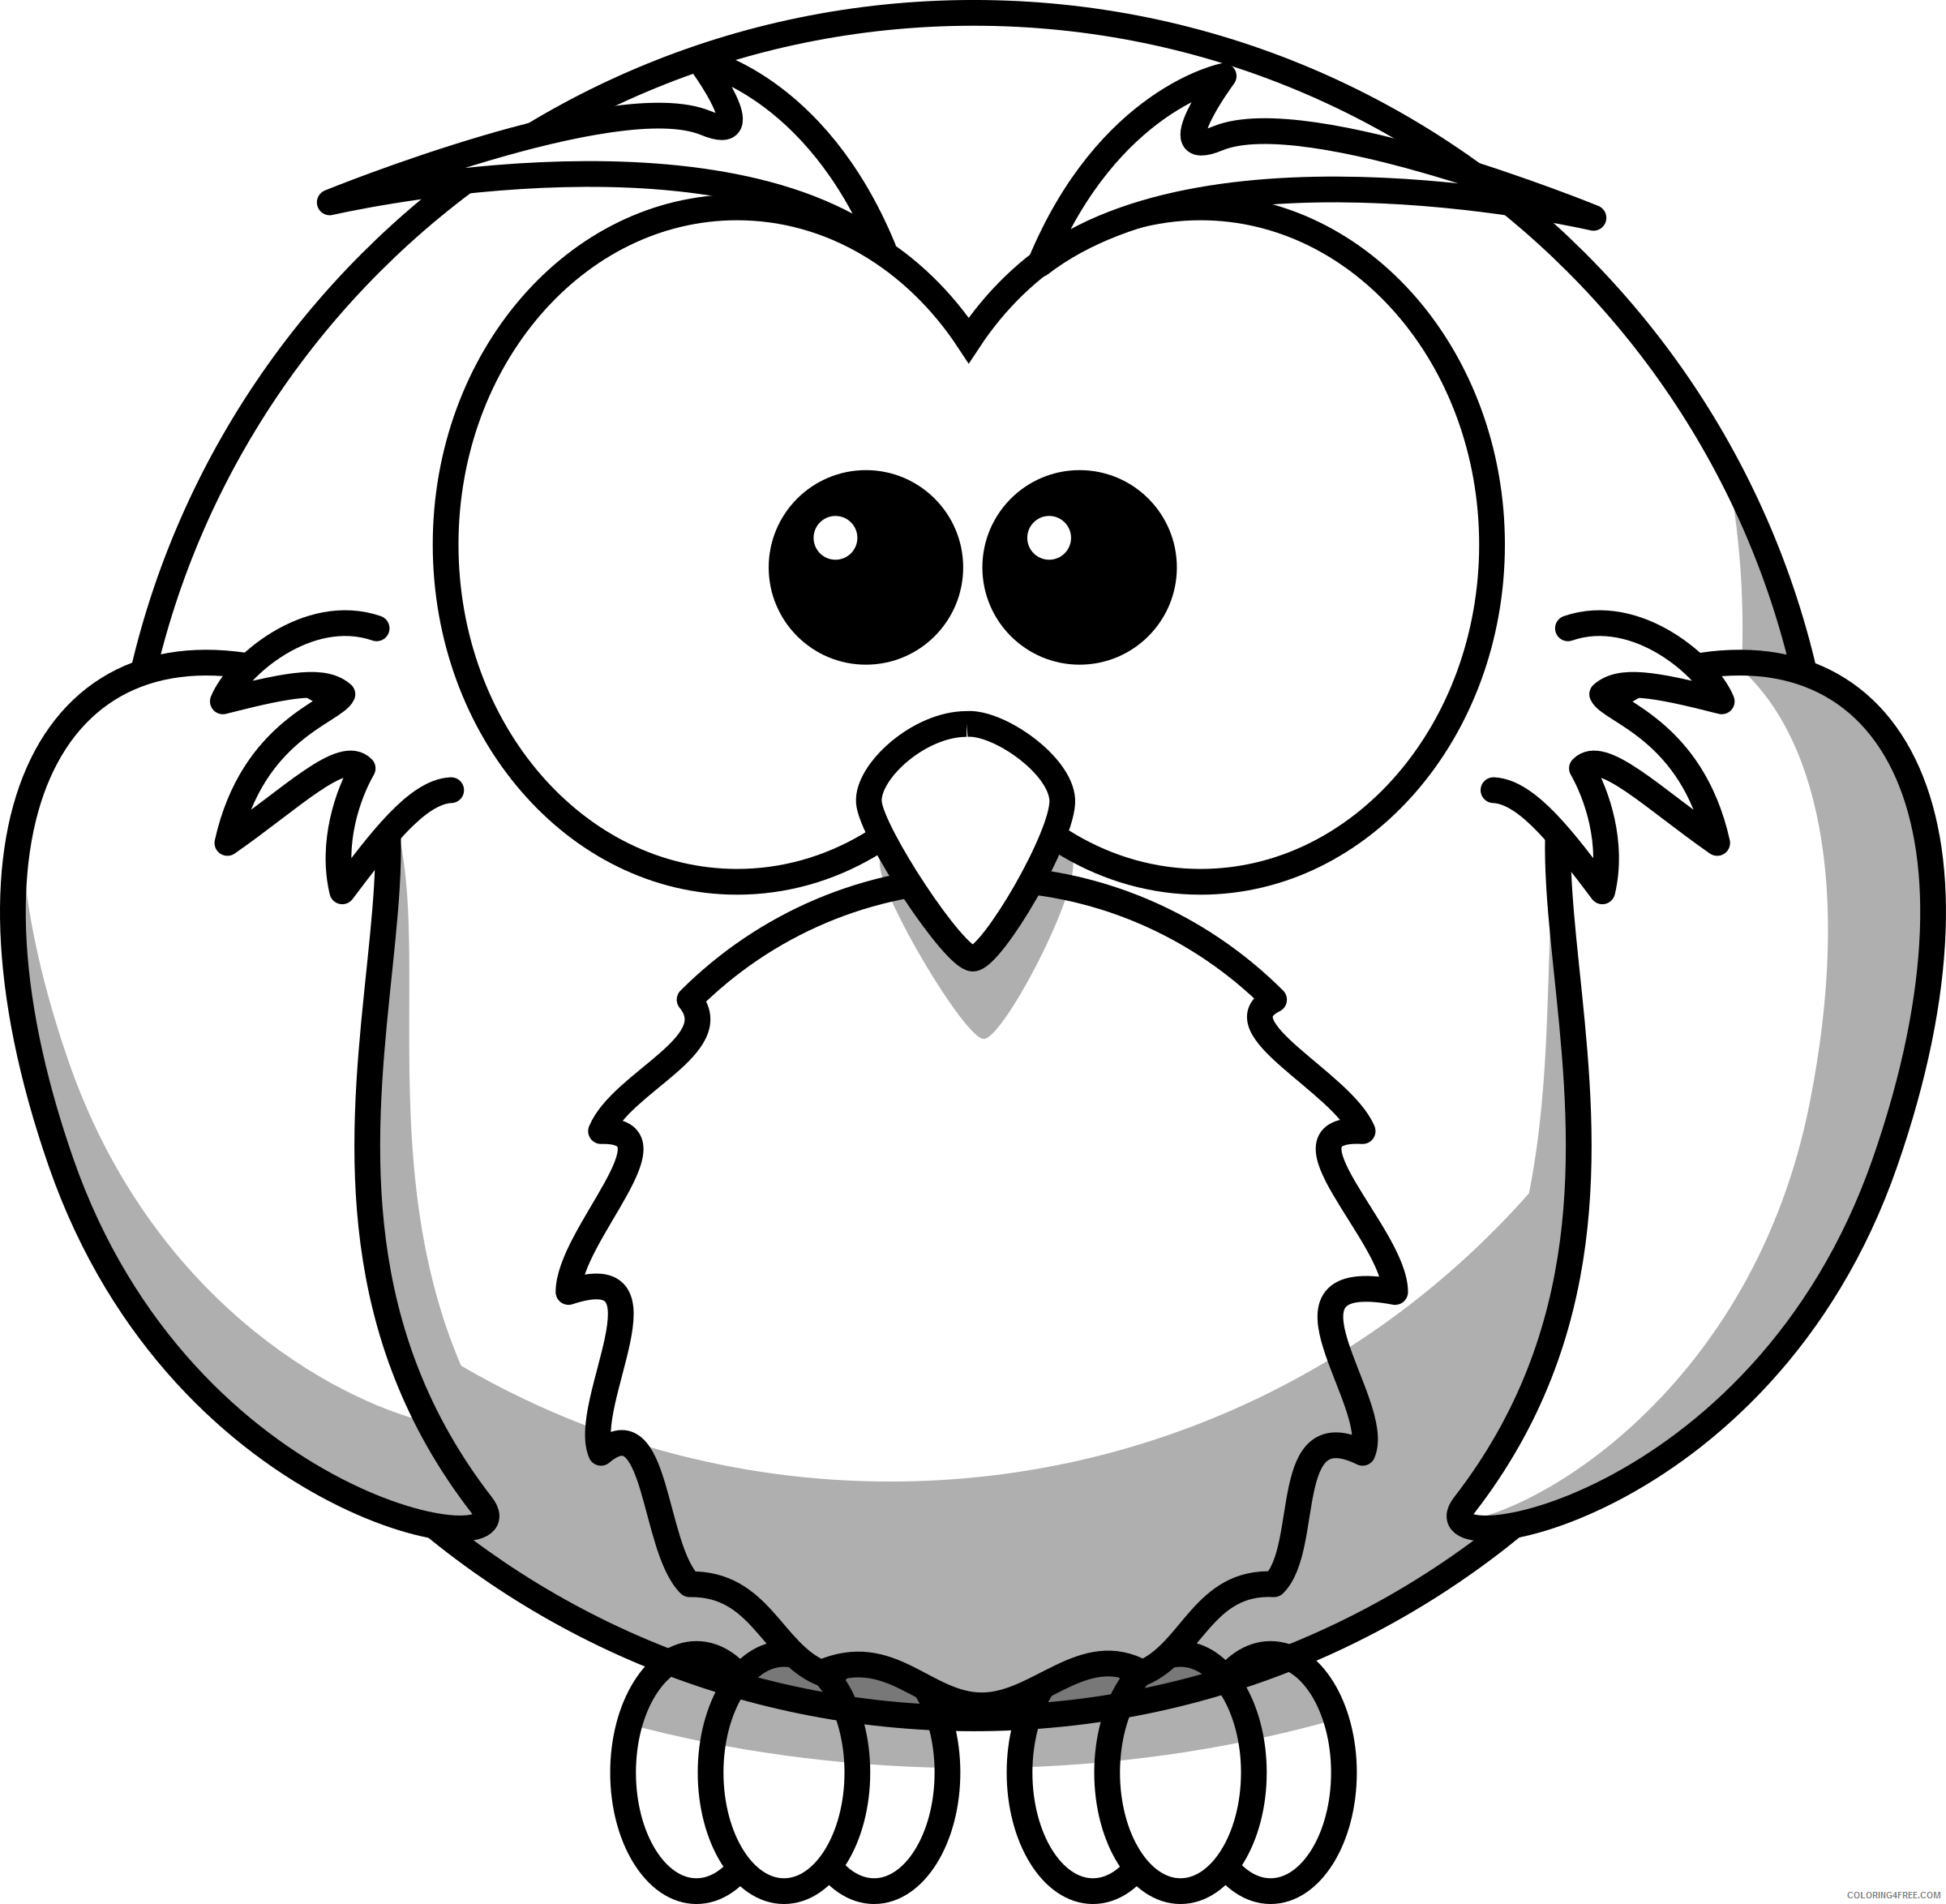 Cartoon Owl Coloring Pages owl line art lemmling cartoon Printable Coloring4free